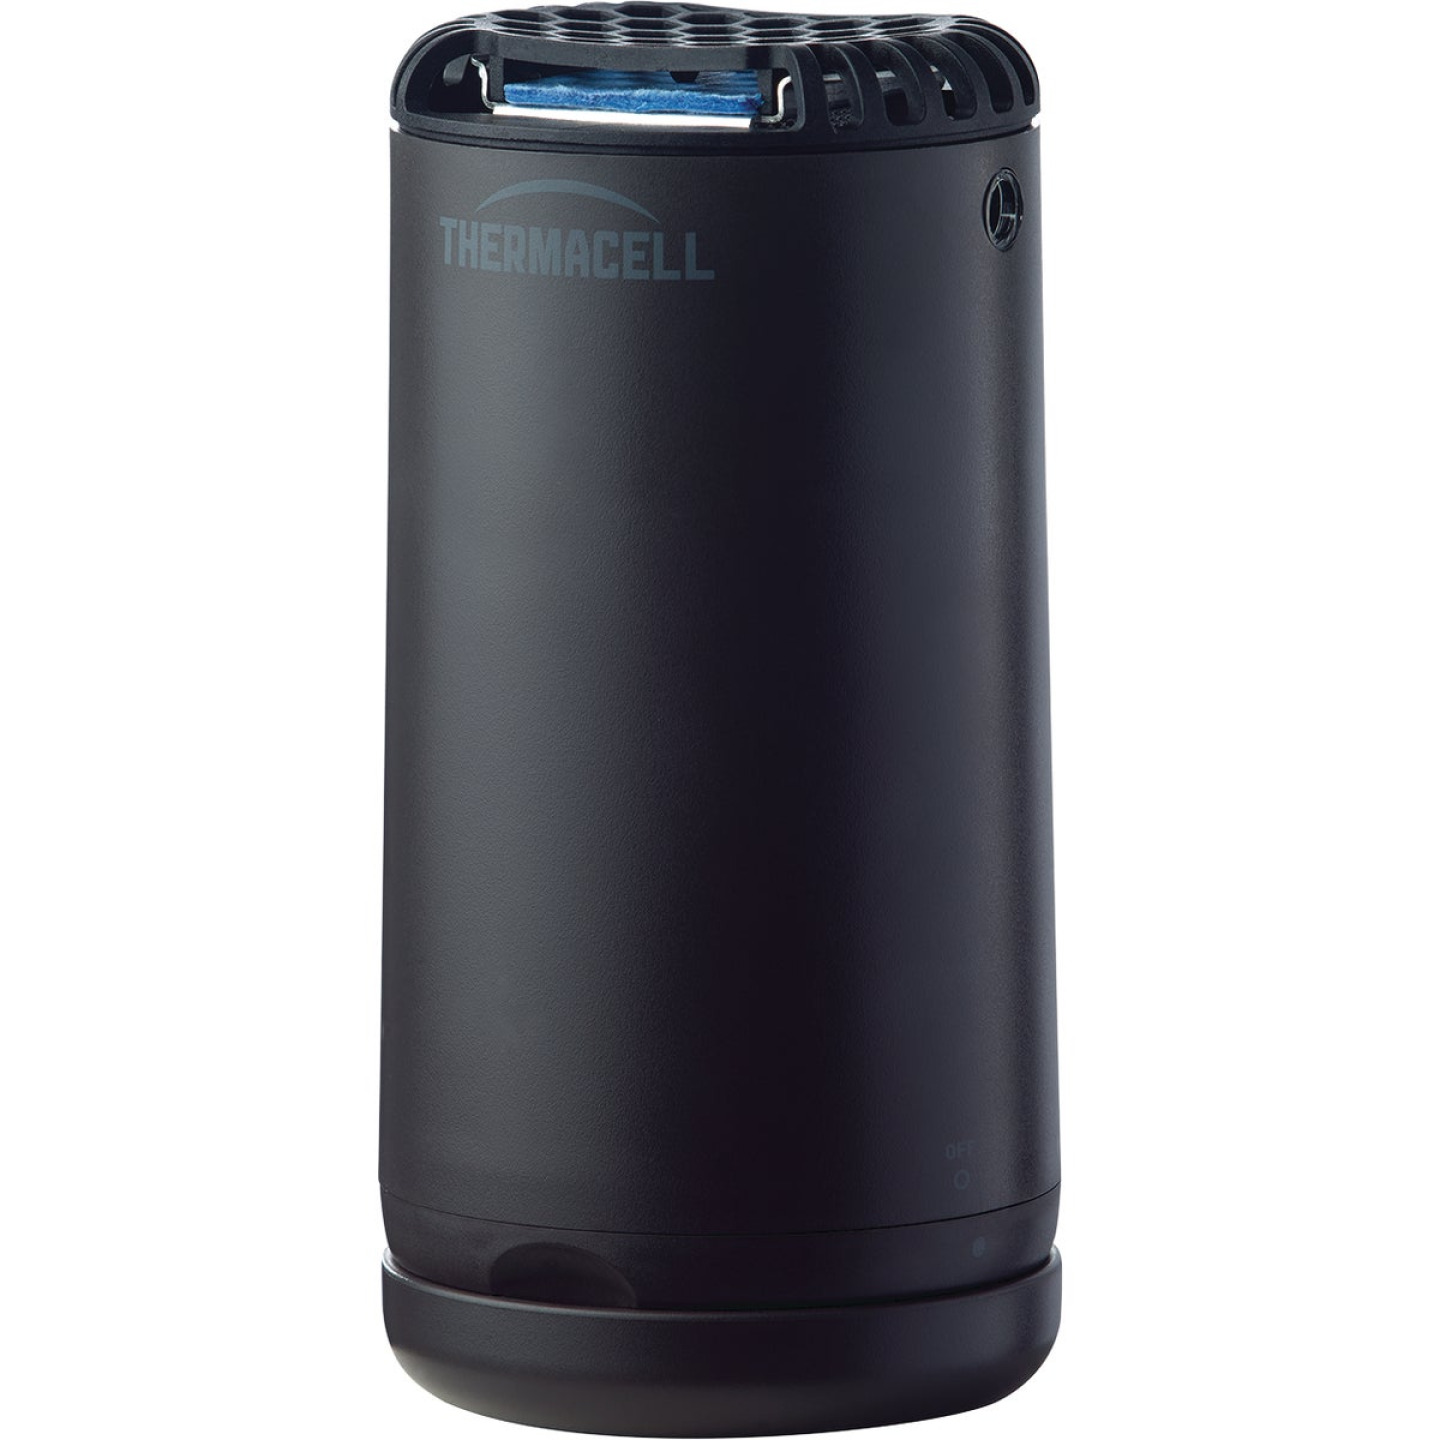 Thermacell Patio Shield 12 Hr. Graphite Black Mosquito Repeller Image 1